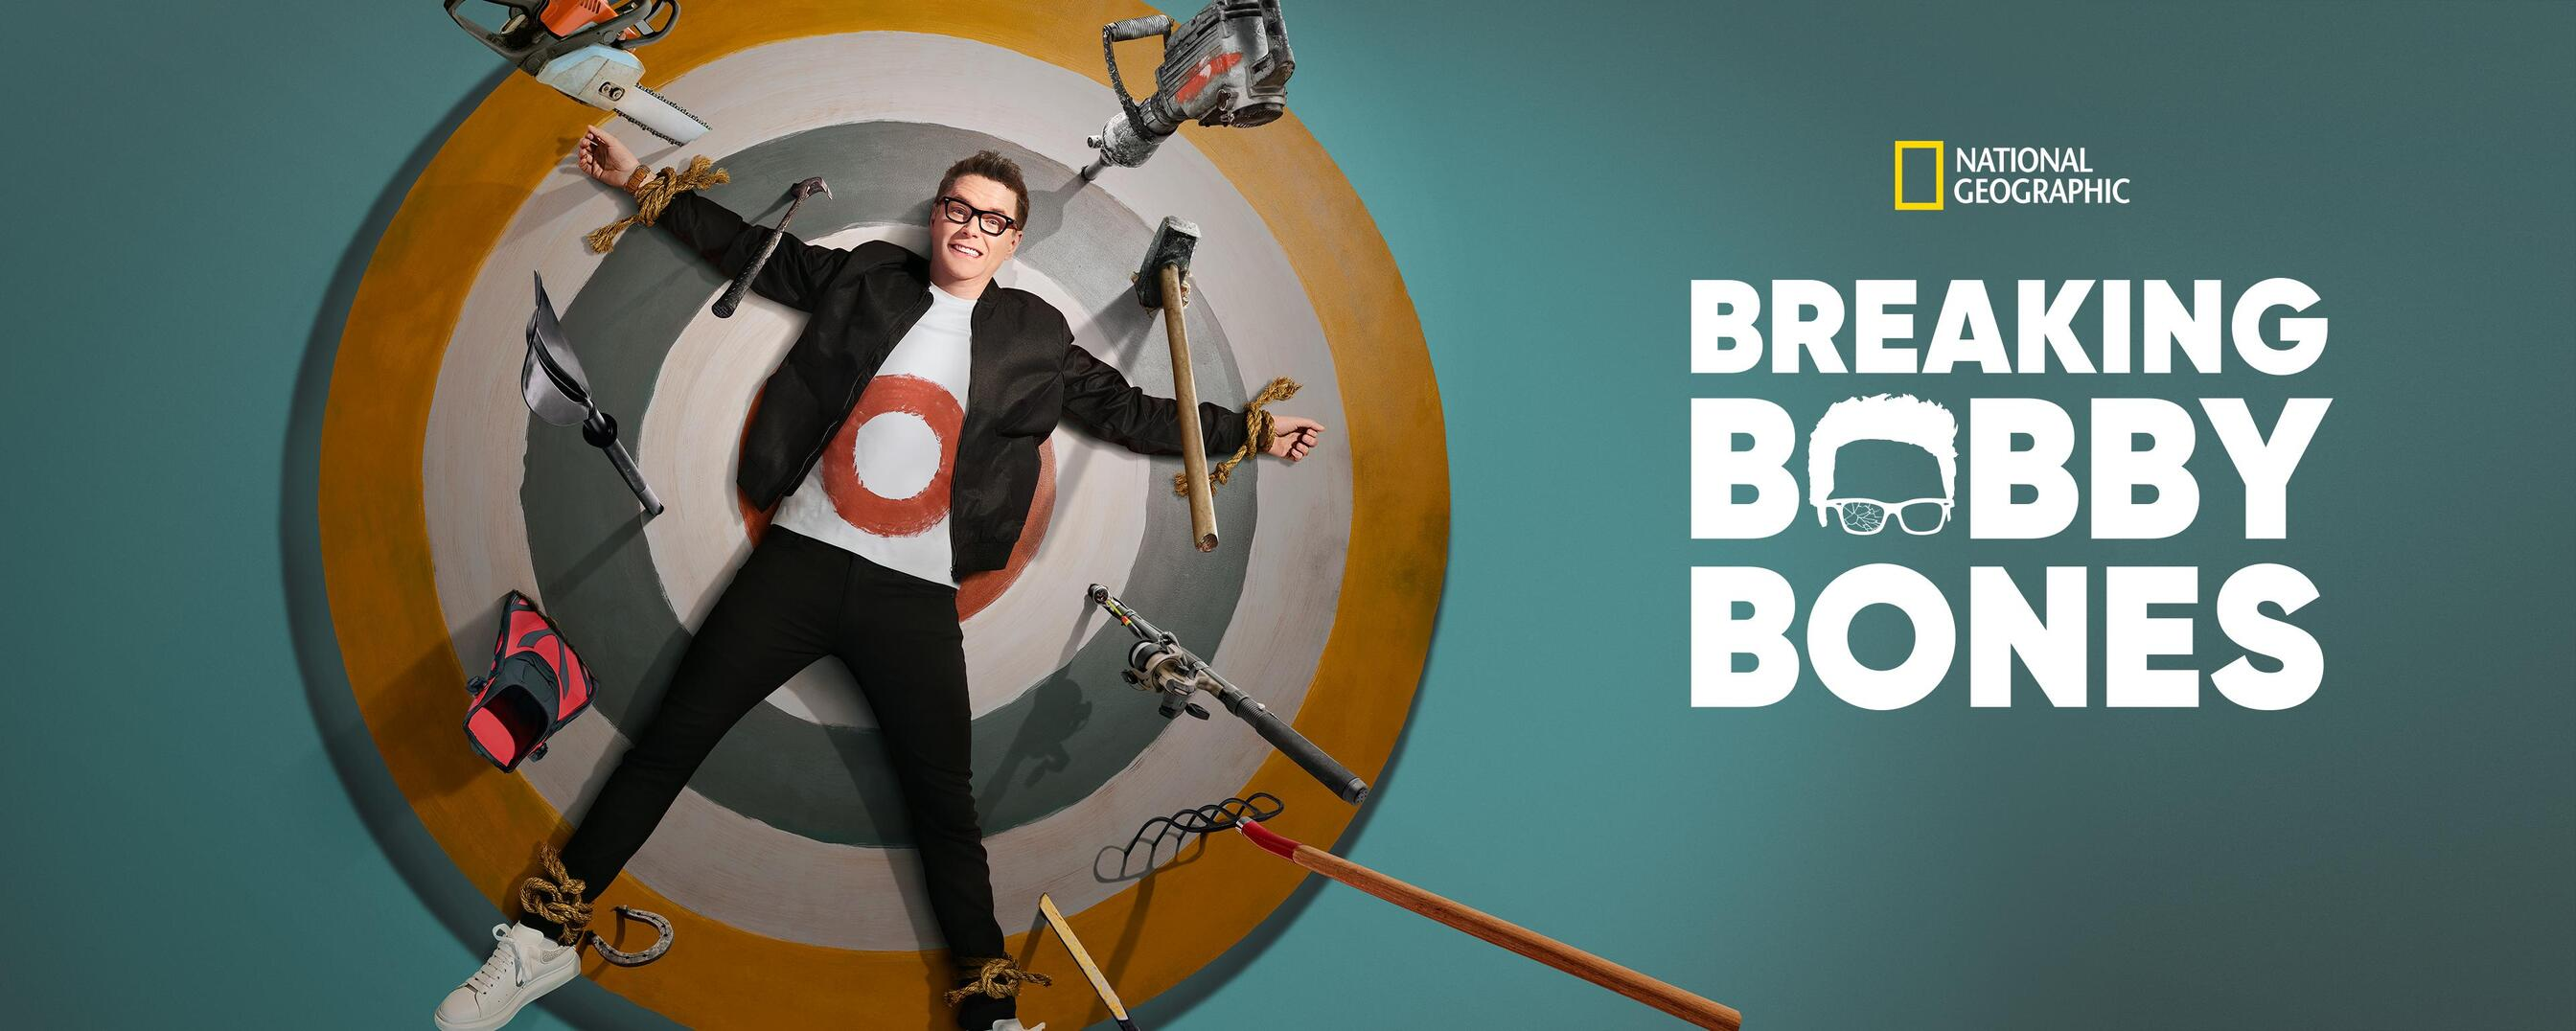 Breaking Bobby Bones series on National Geographic Channel